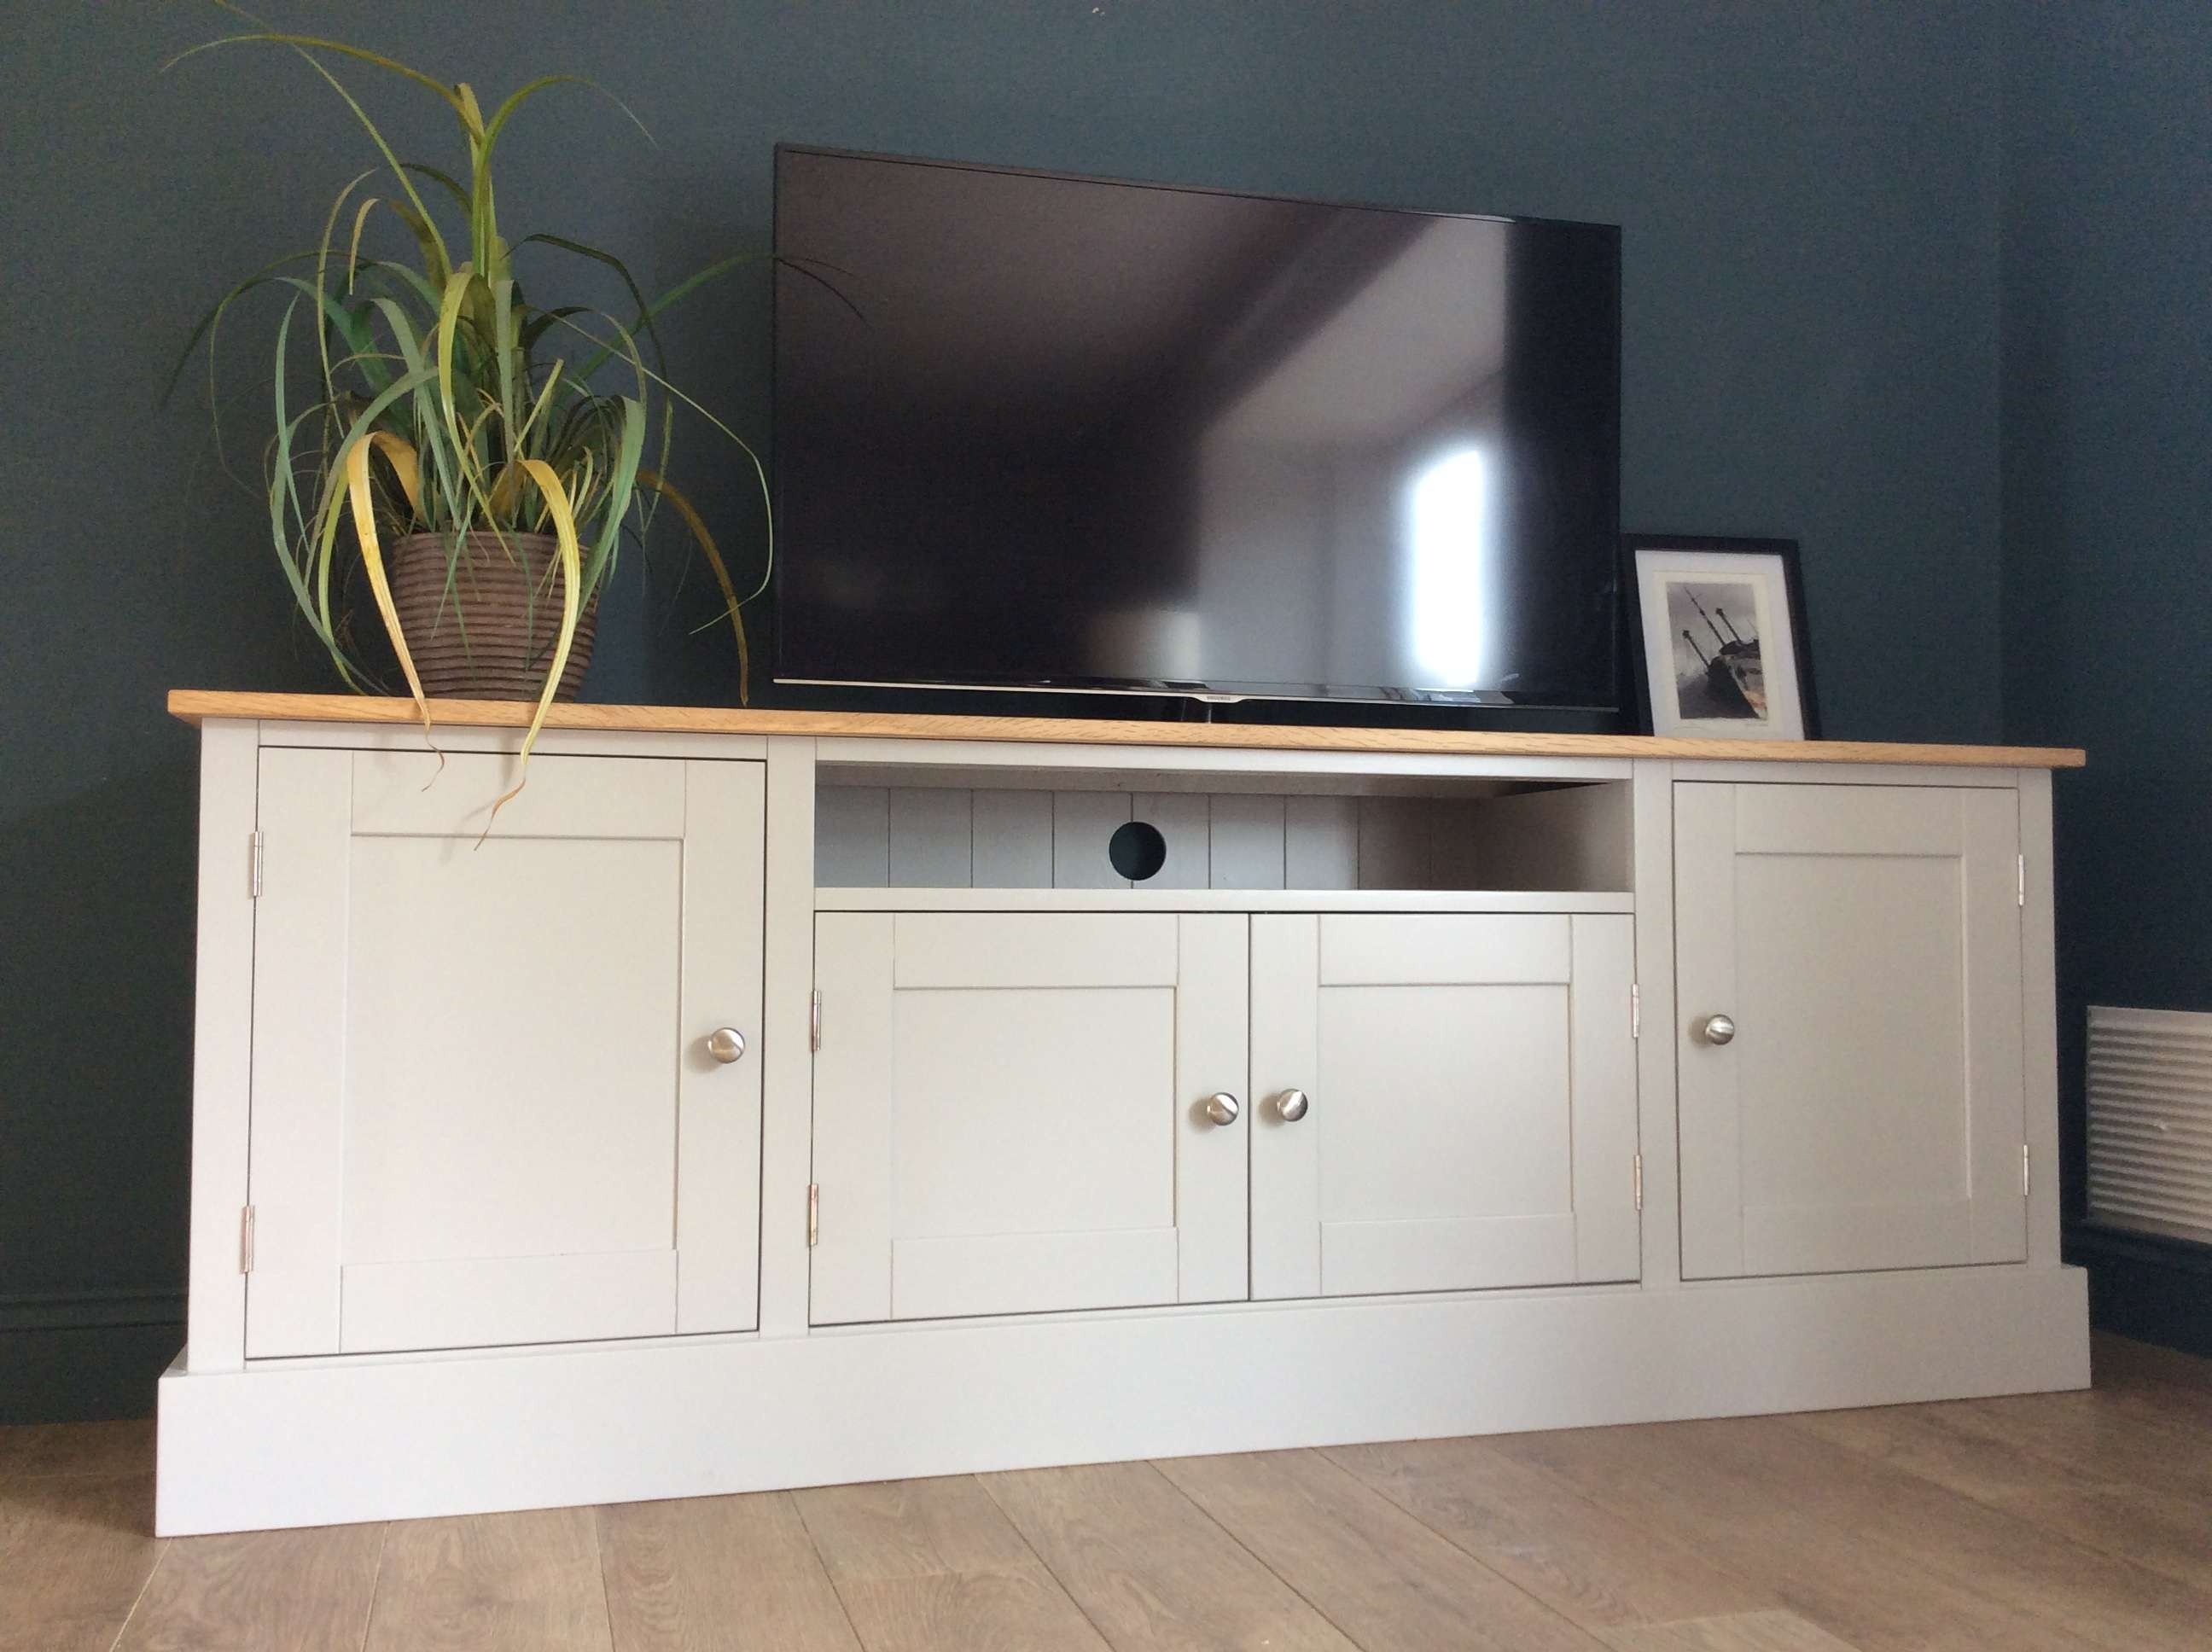 6Ft Solid Pine & Oak Tv Cabinet – Nest At Number 20 Pertaining To Solid Pine Tv Cabinets (View 6 of 20)